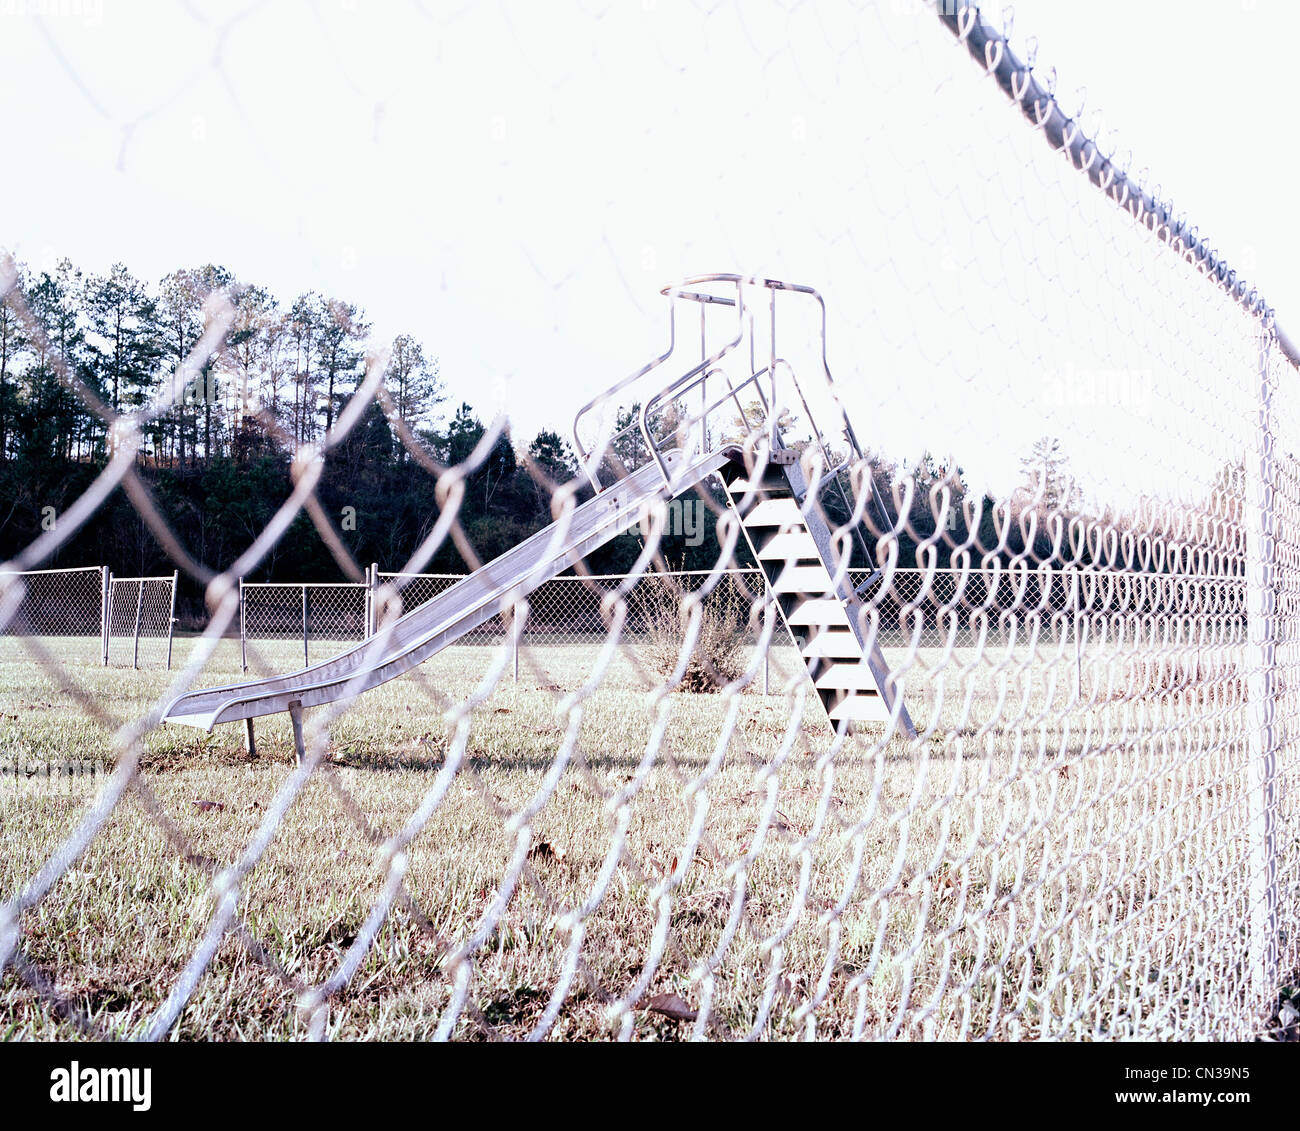 Playground through chain link fence - Stock Image